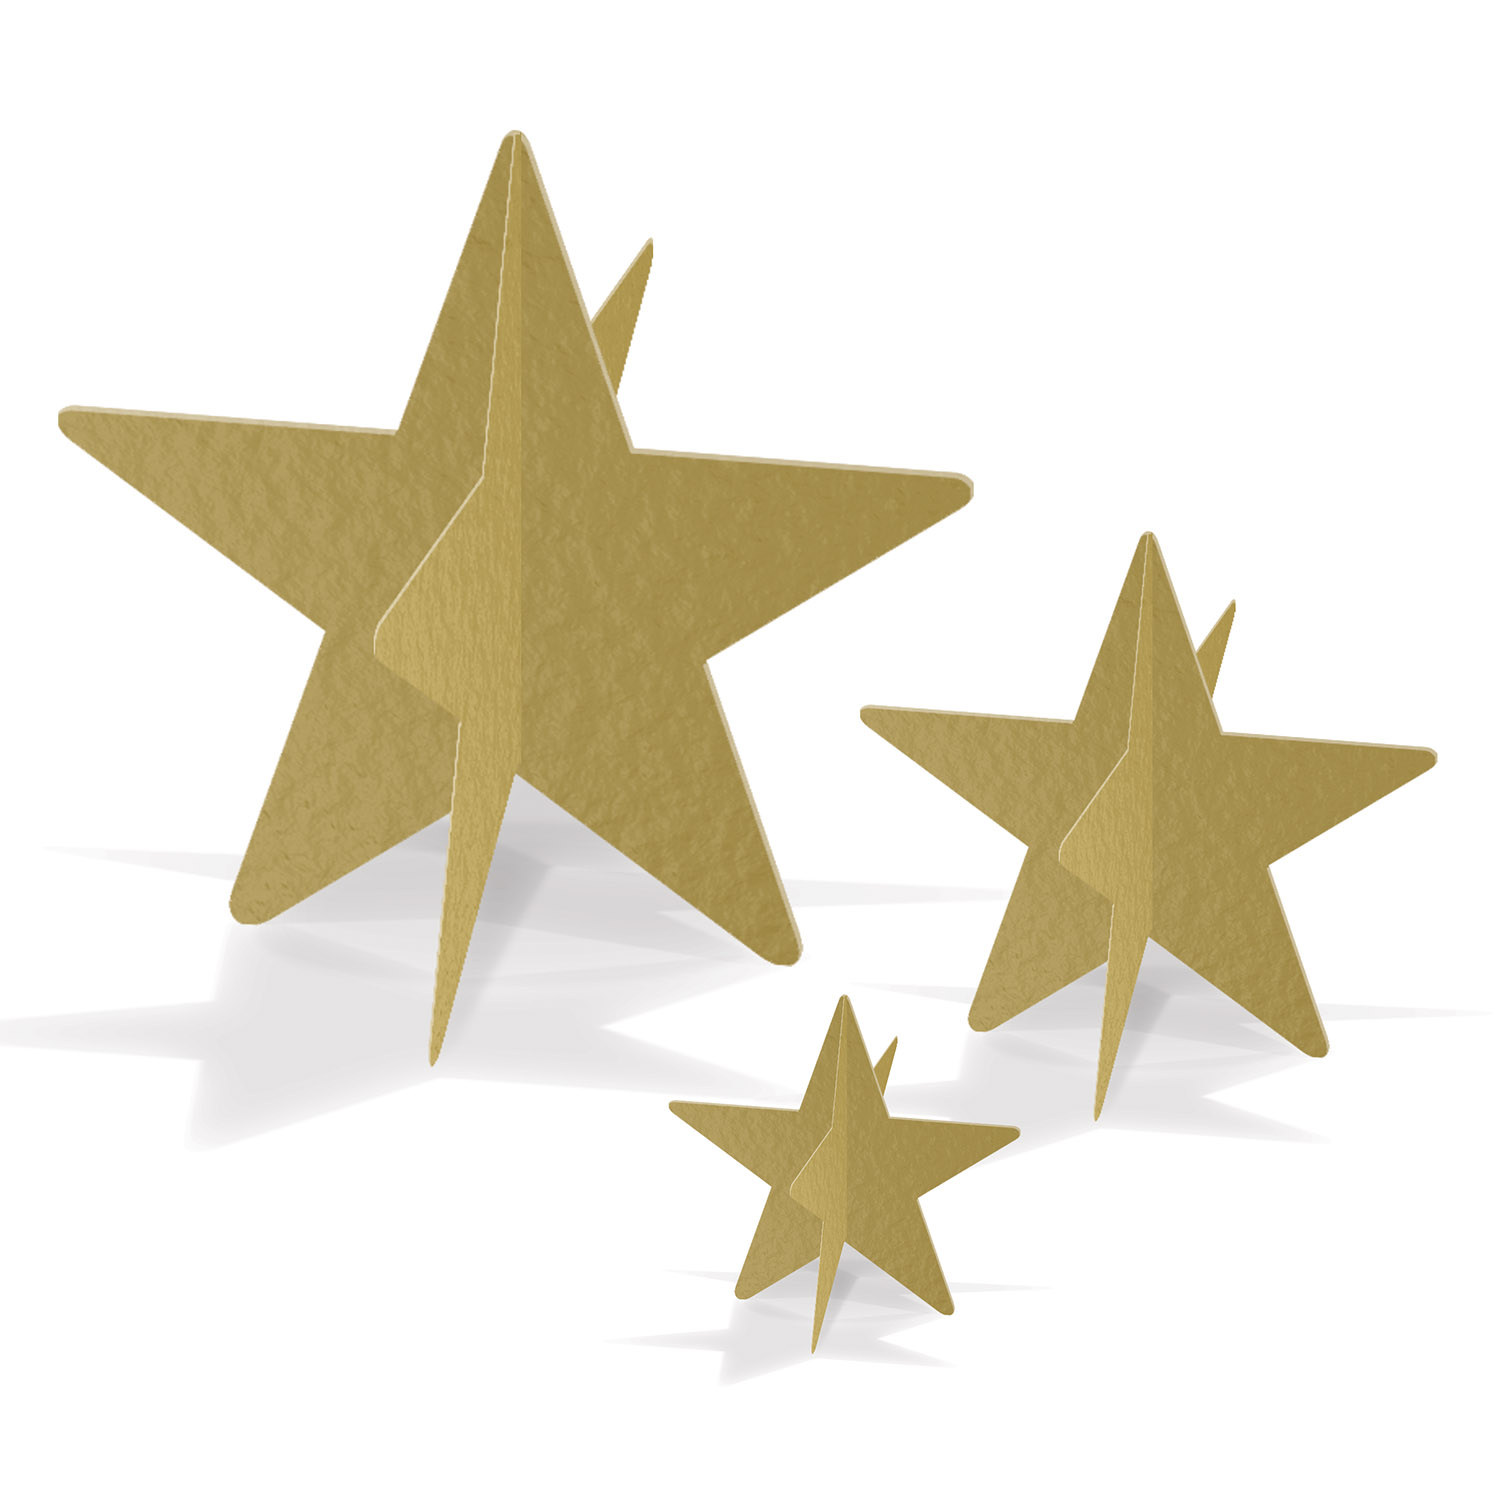 3-D Foil Star Centerpieces (Pack of 36) 3-D Foil Star Centerpieces, New Years Eve, Hollywood, decoration, centerpiece, wholesale, inexpensive, bulk